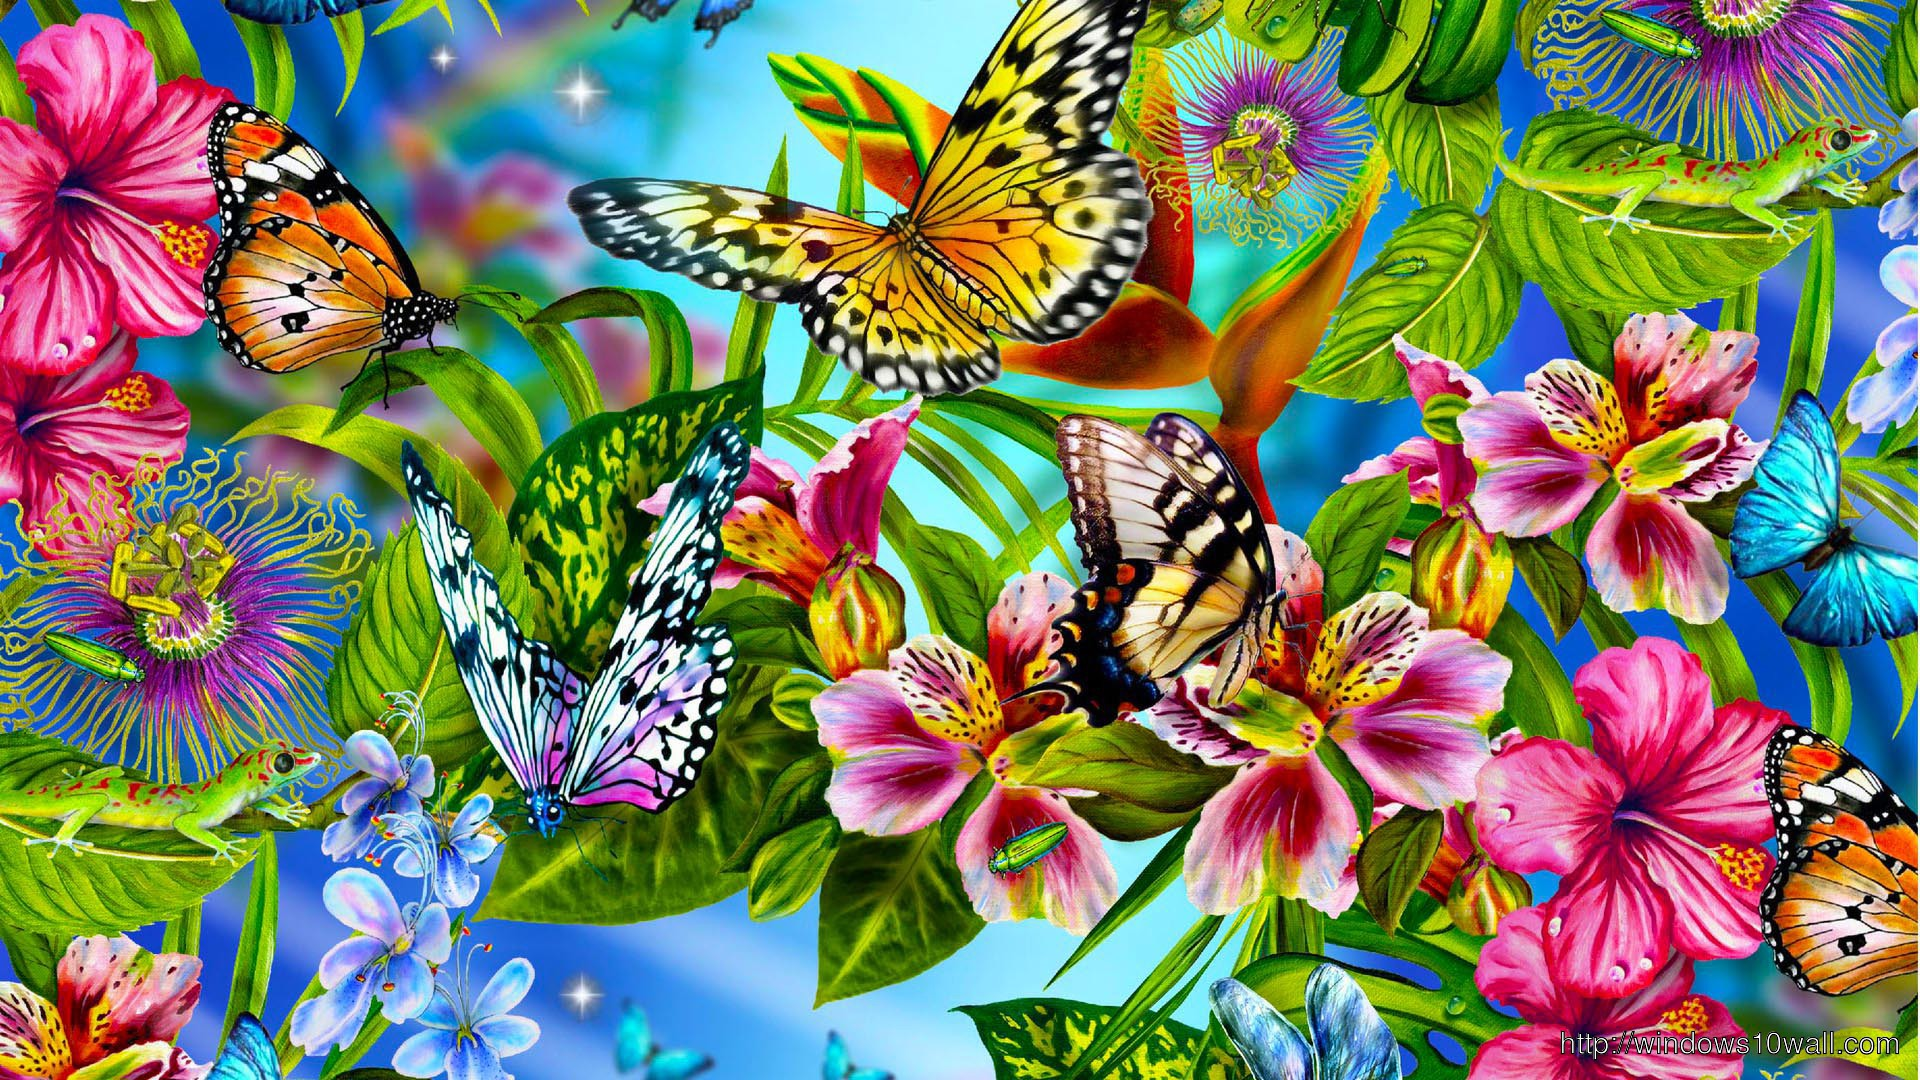 Butterfly Wallpaper To Download Windows 10 Wallpapers